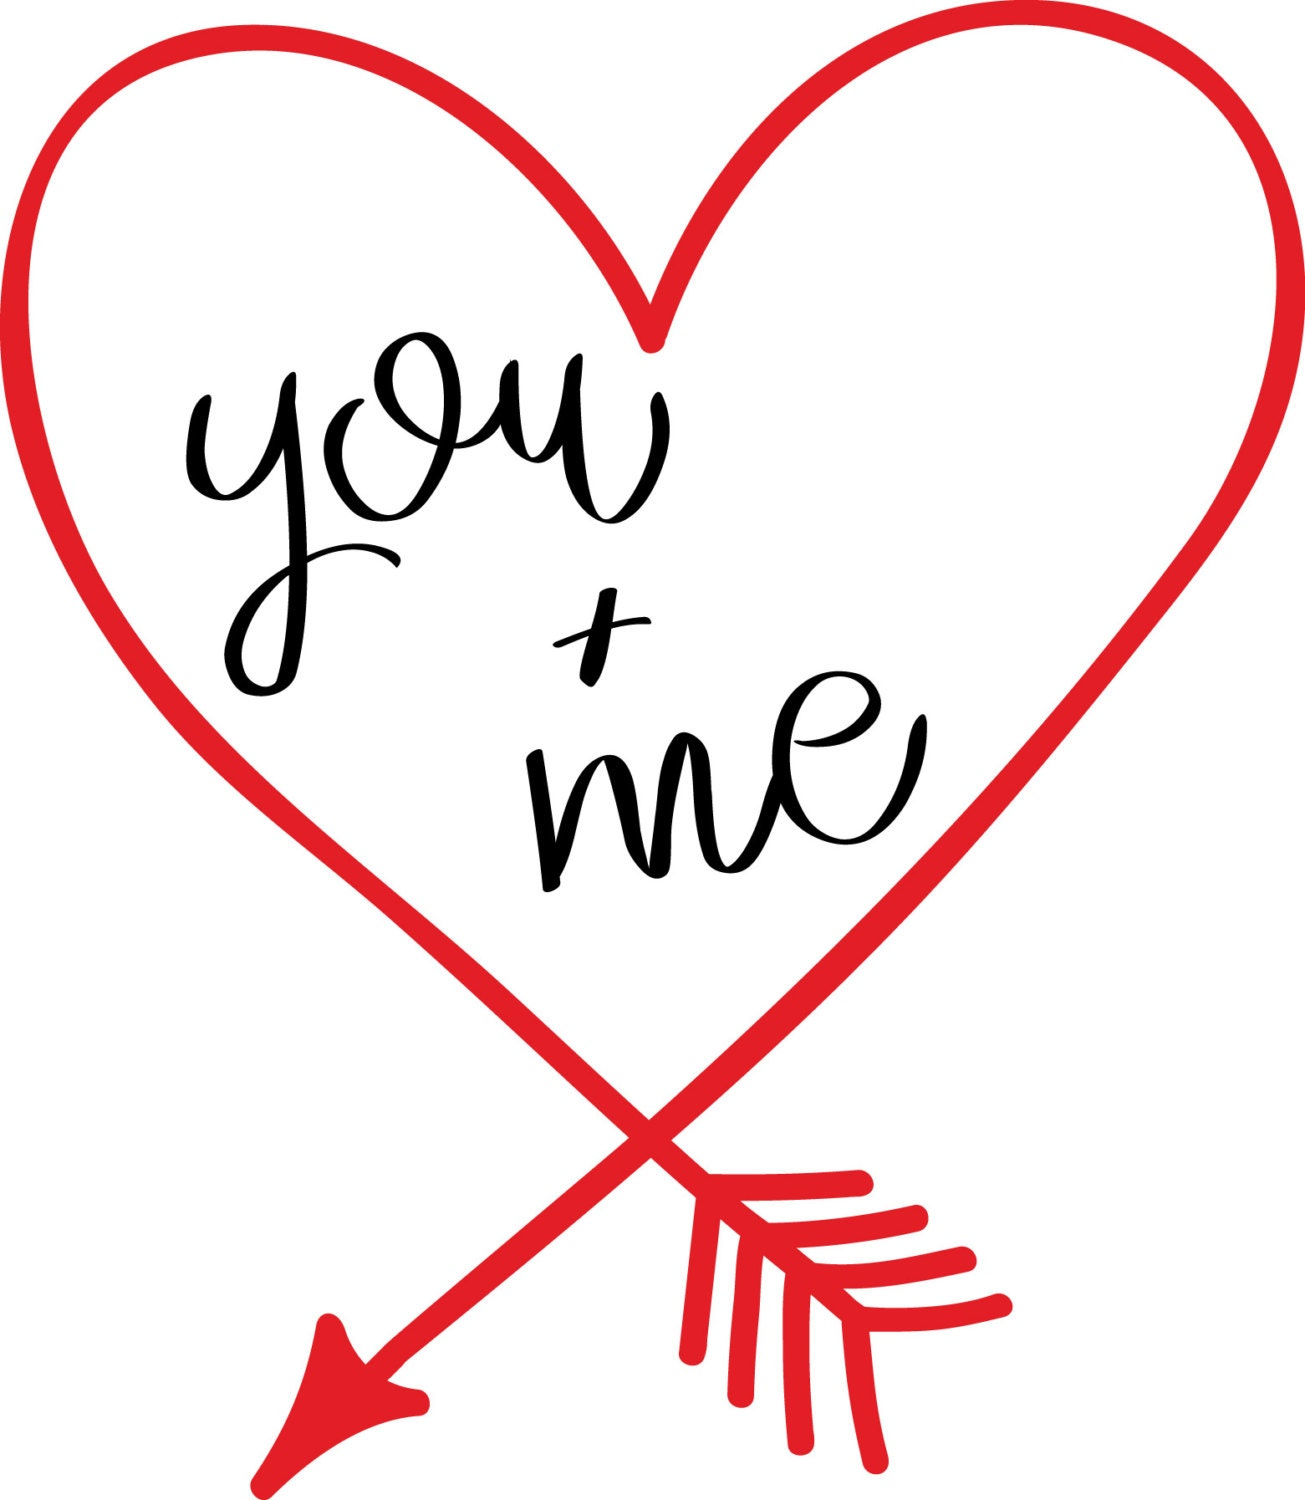 You Me Heart Shaped Arrow Vinyl Cut File Svg Dfx